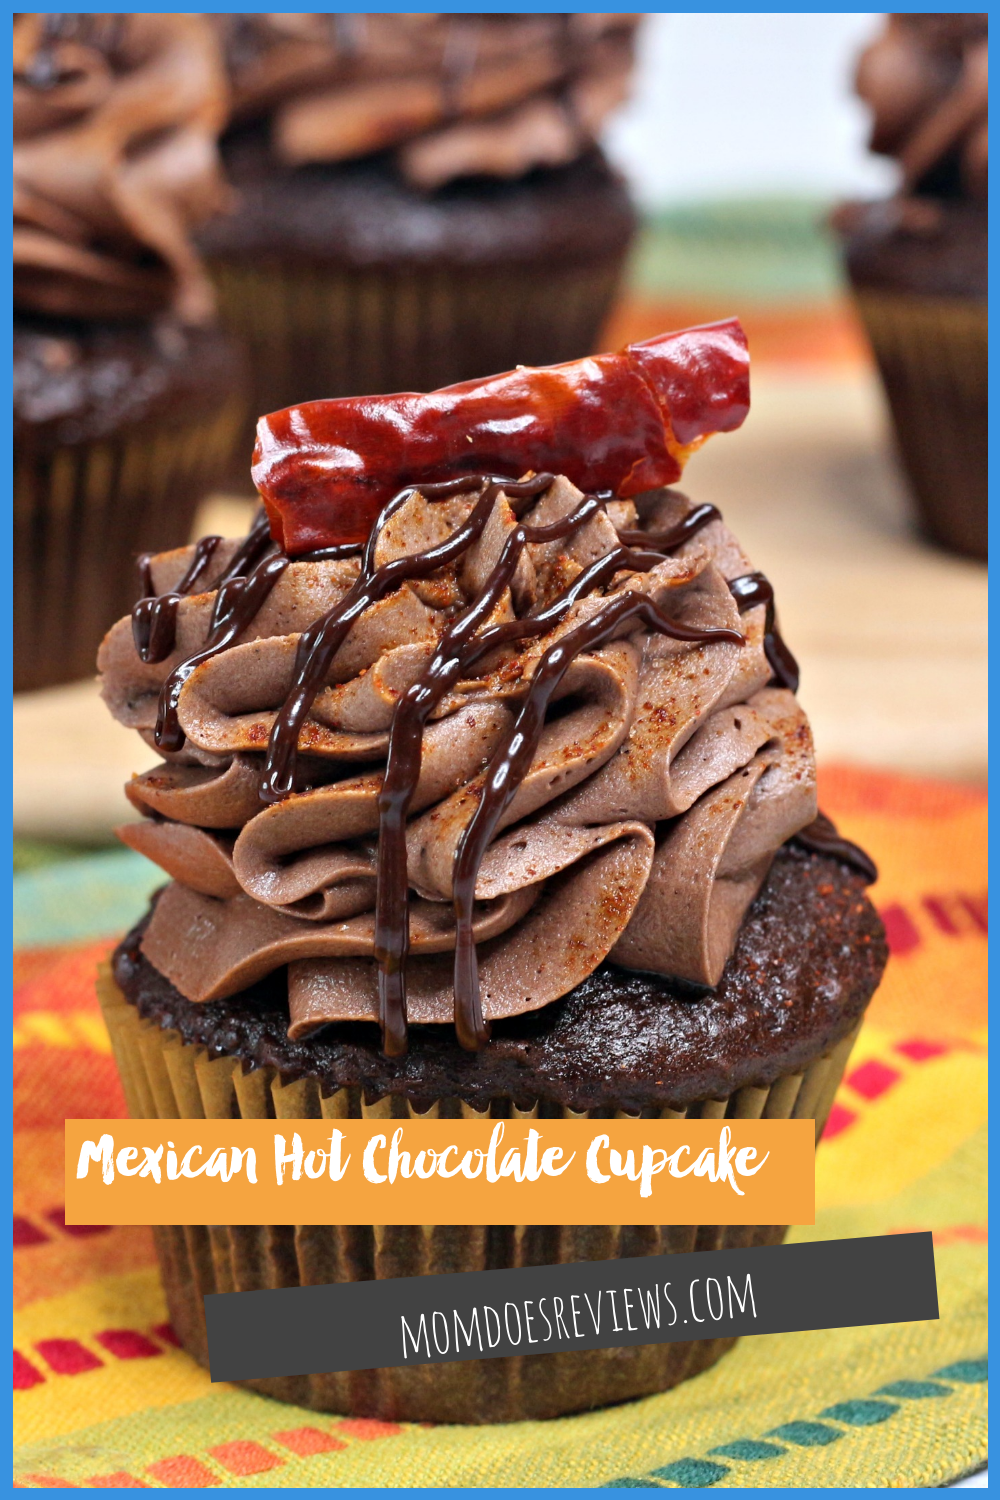 Mexican Hot Chocolate Cupcake #recipe #cupcakedecorating #chocolatelovers